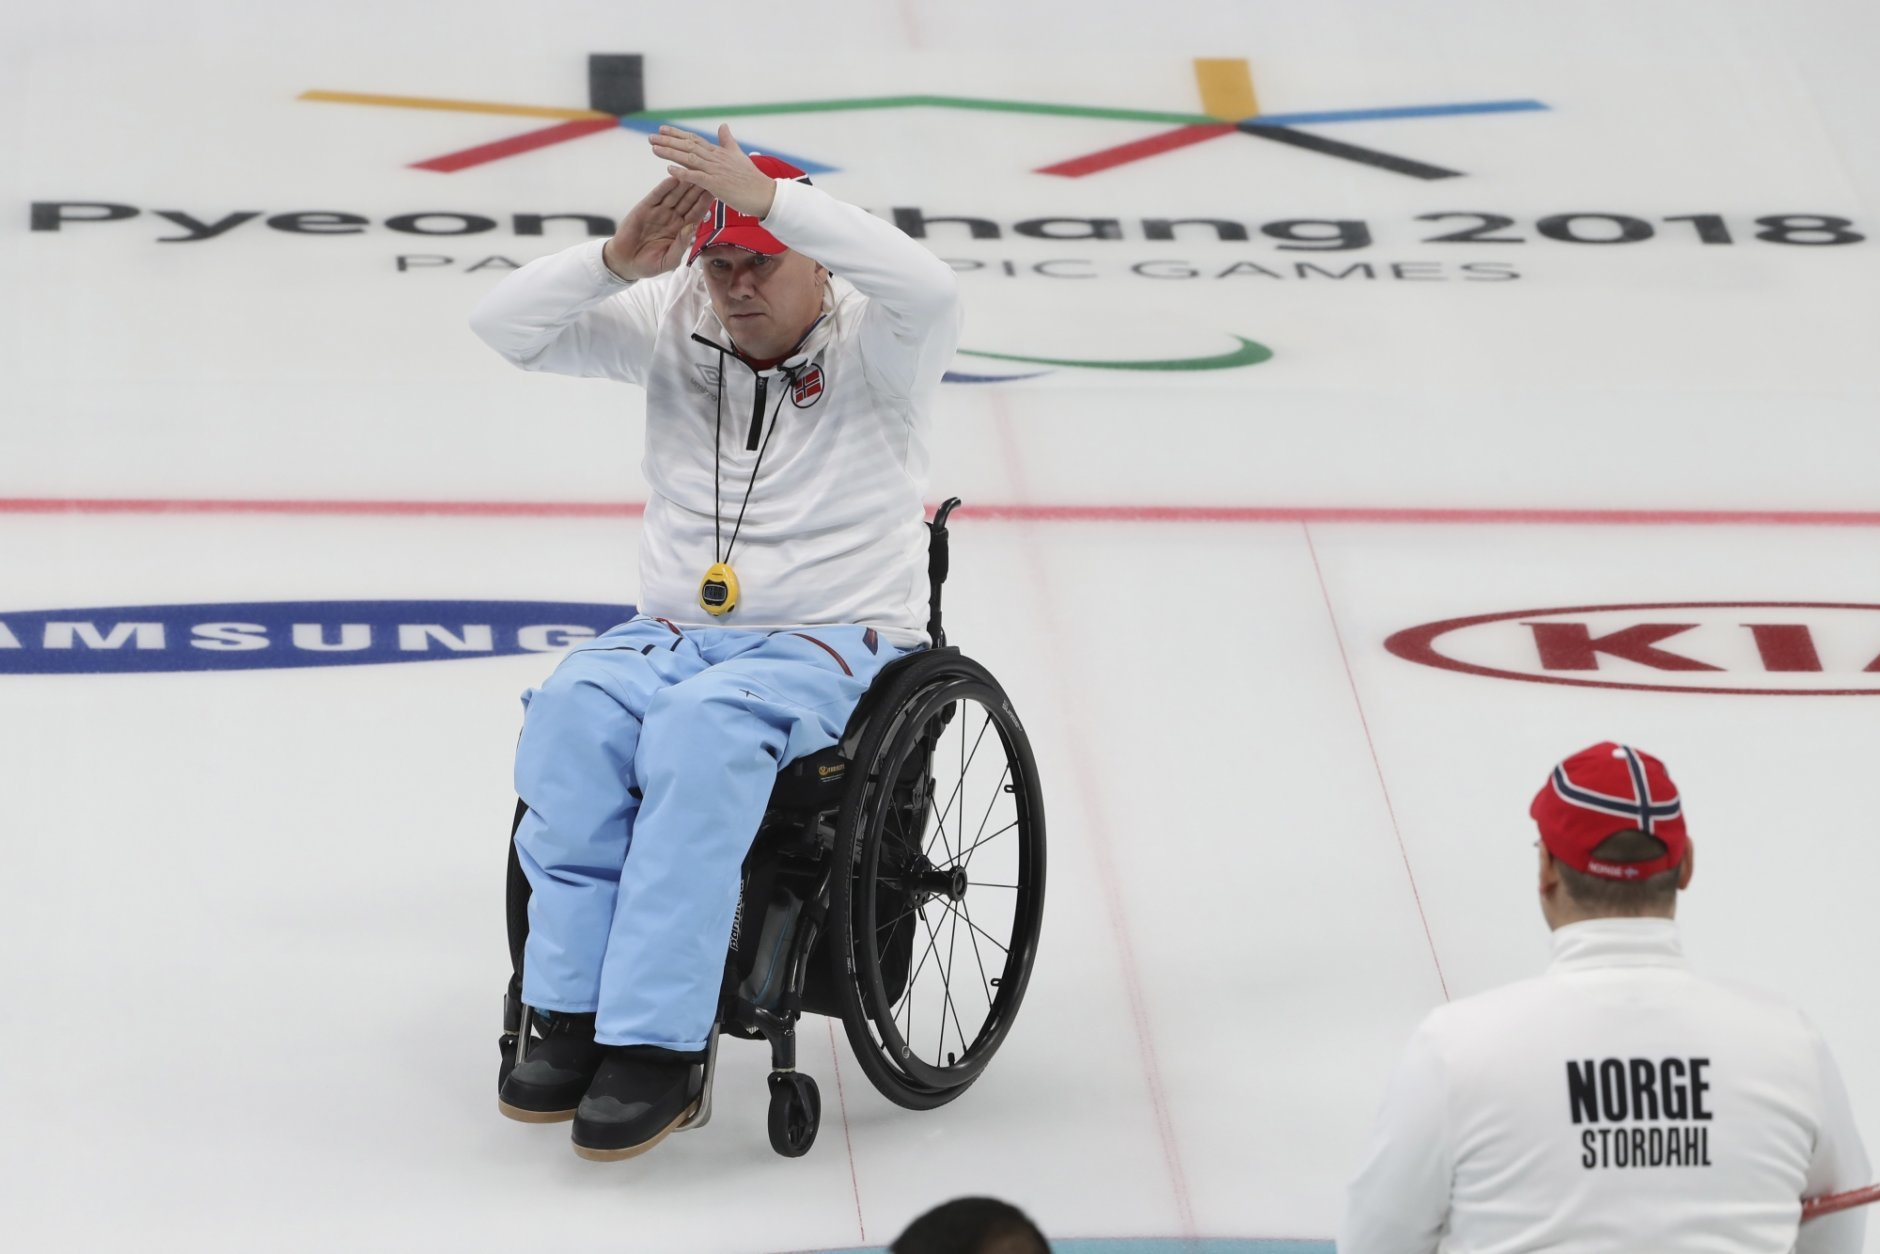 Norway's Rune Lorensten calls for time out during the Wheelchair Curling gold medal match against China for the 2018 Winter Paralympics at the Gangneung Curling Centre in Gangneung, South Korea, Saturday, March 17, 2018.(AP Photo/Ng Han Guan)